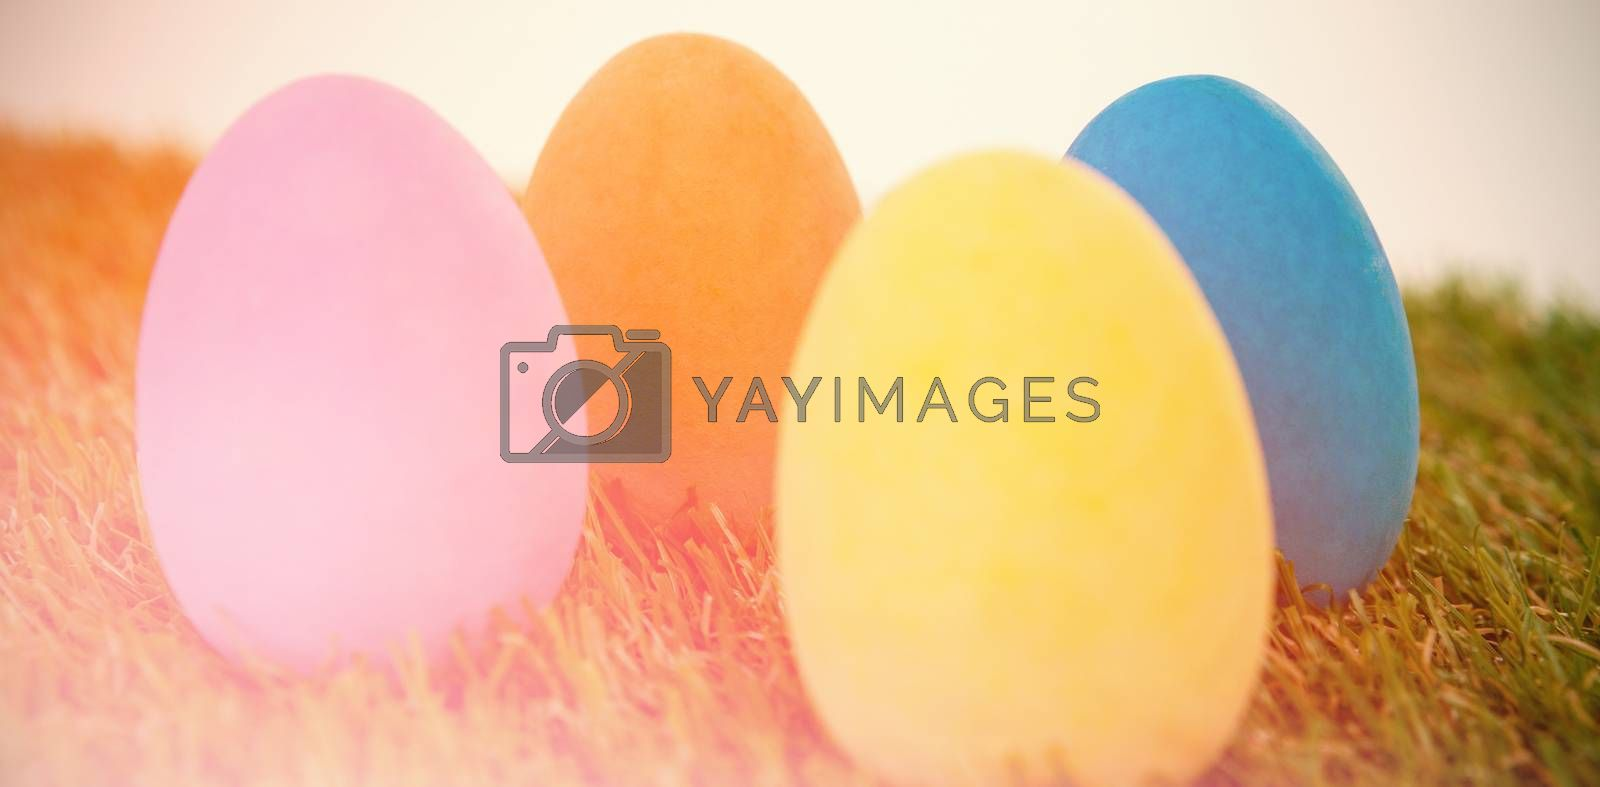 Painted Easter eggs arranged on grass against white background